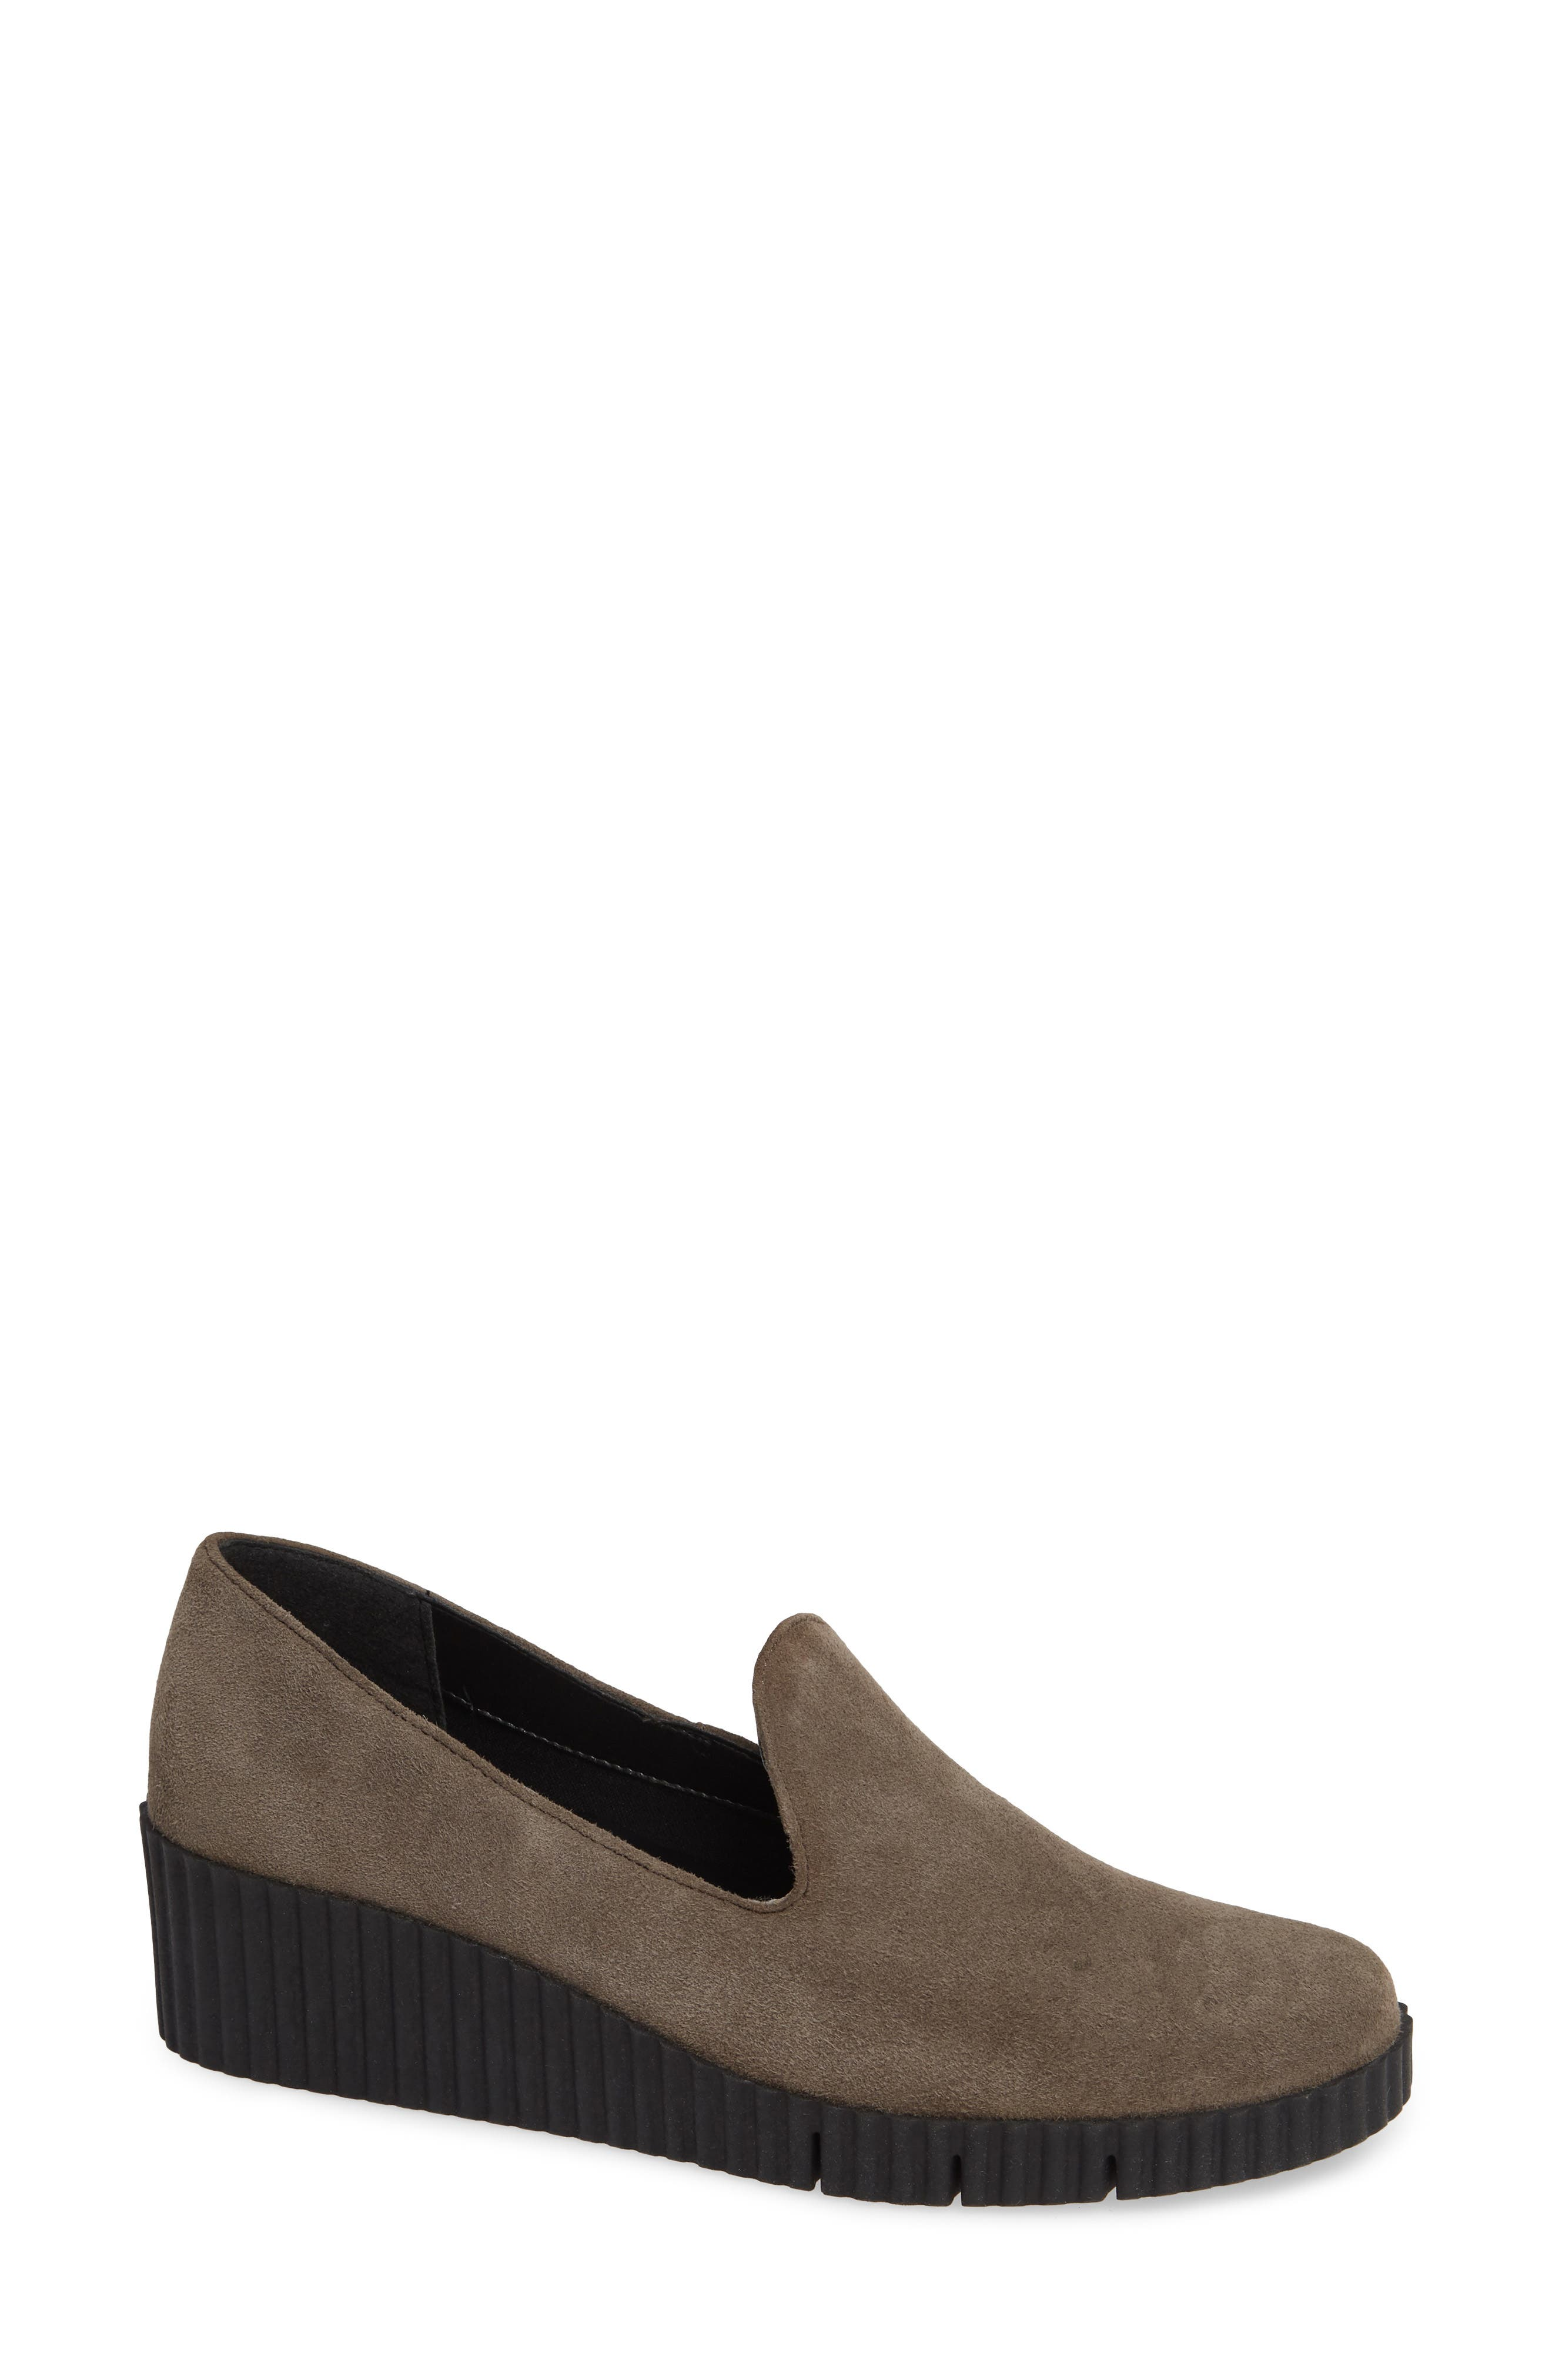 THE FLEXX, Fast Times Loafer, Main thumbnail 1, color, BROWN SUEDE